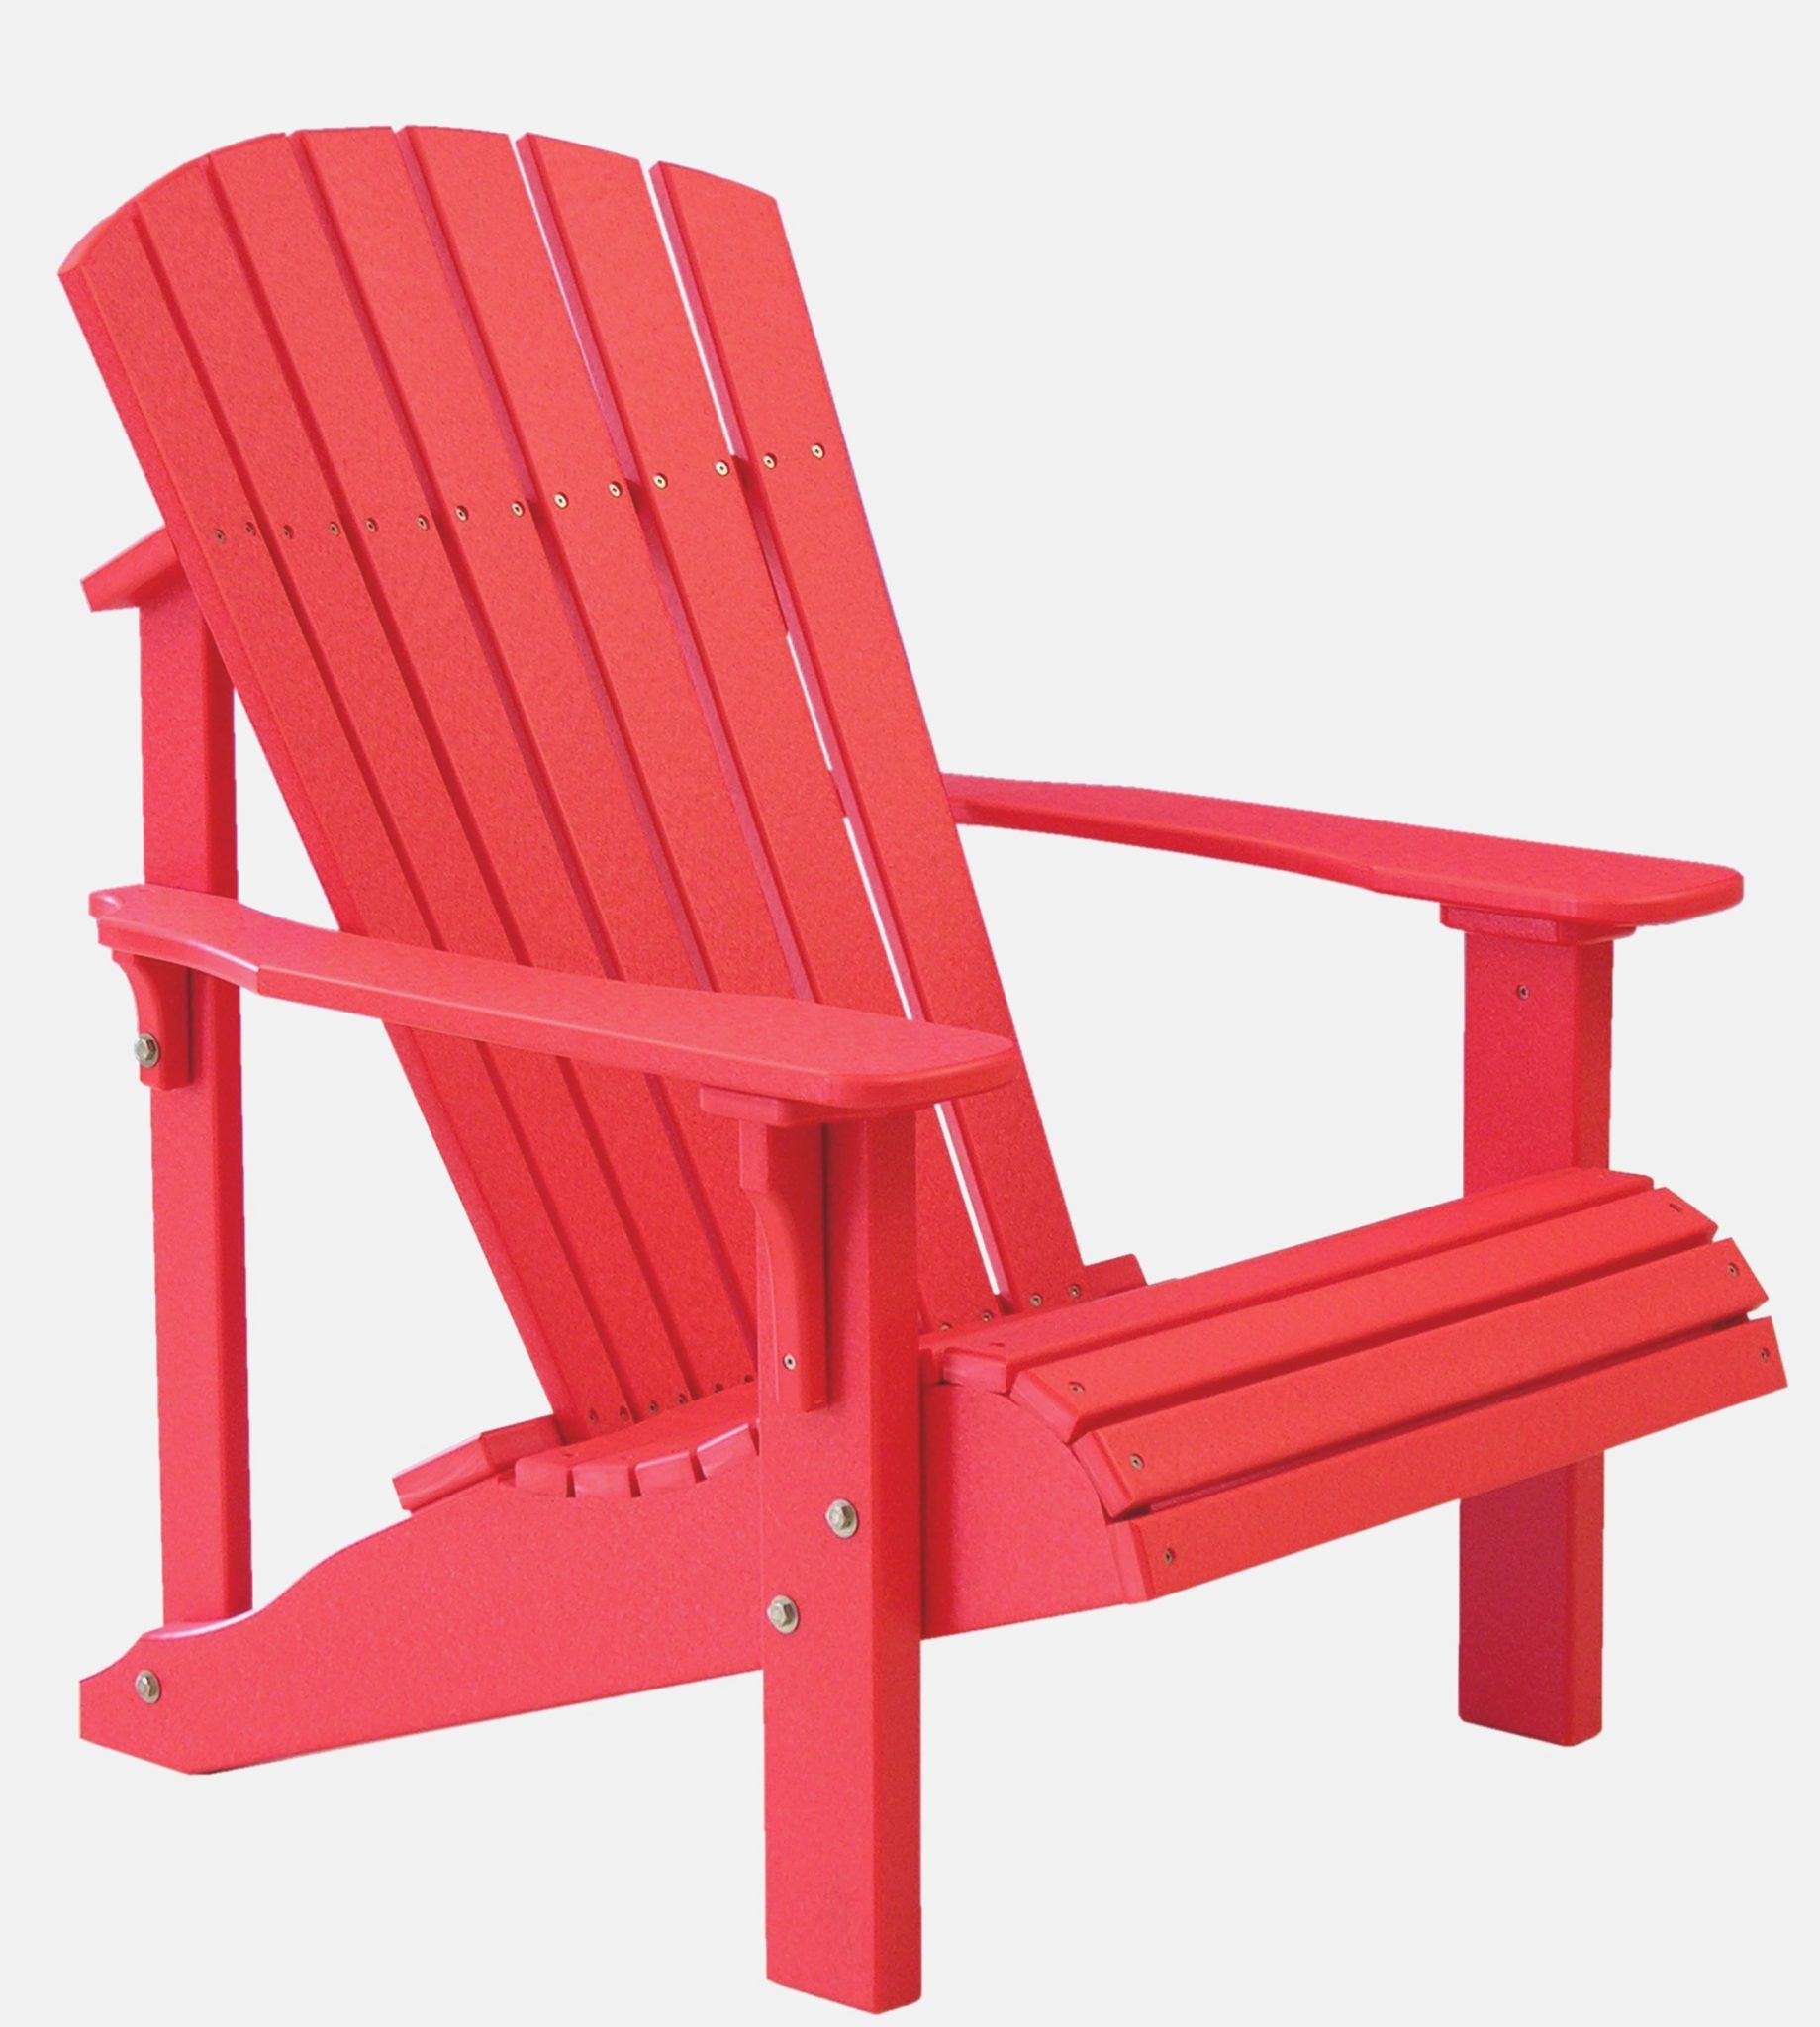 Unfinished Adirondack Chair Ikea Sitting Chairs Cheap How To Finish Paint